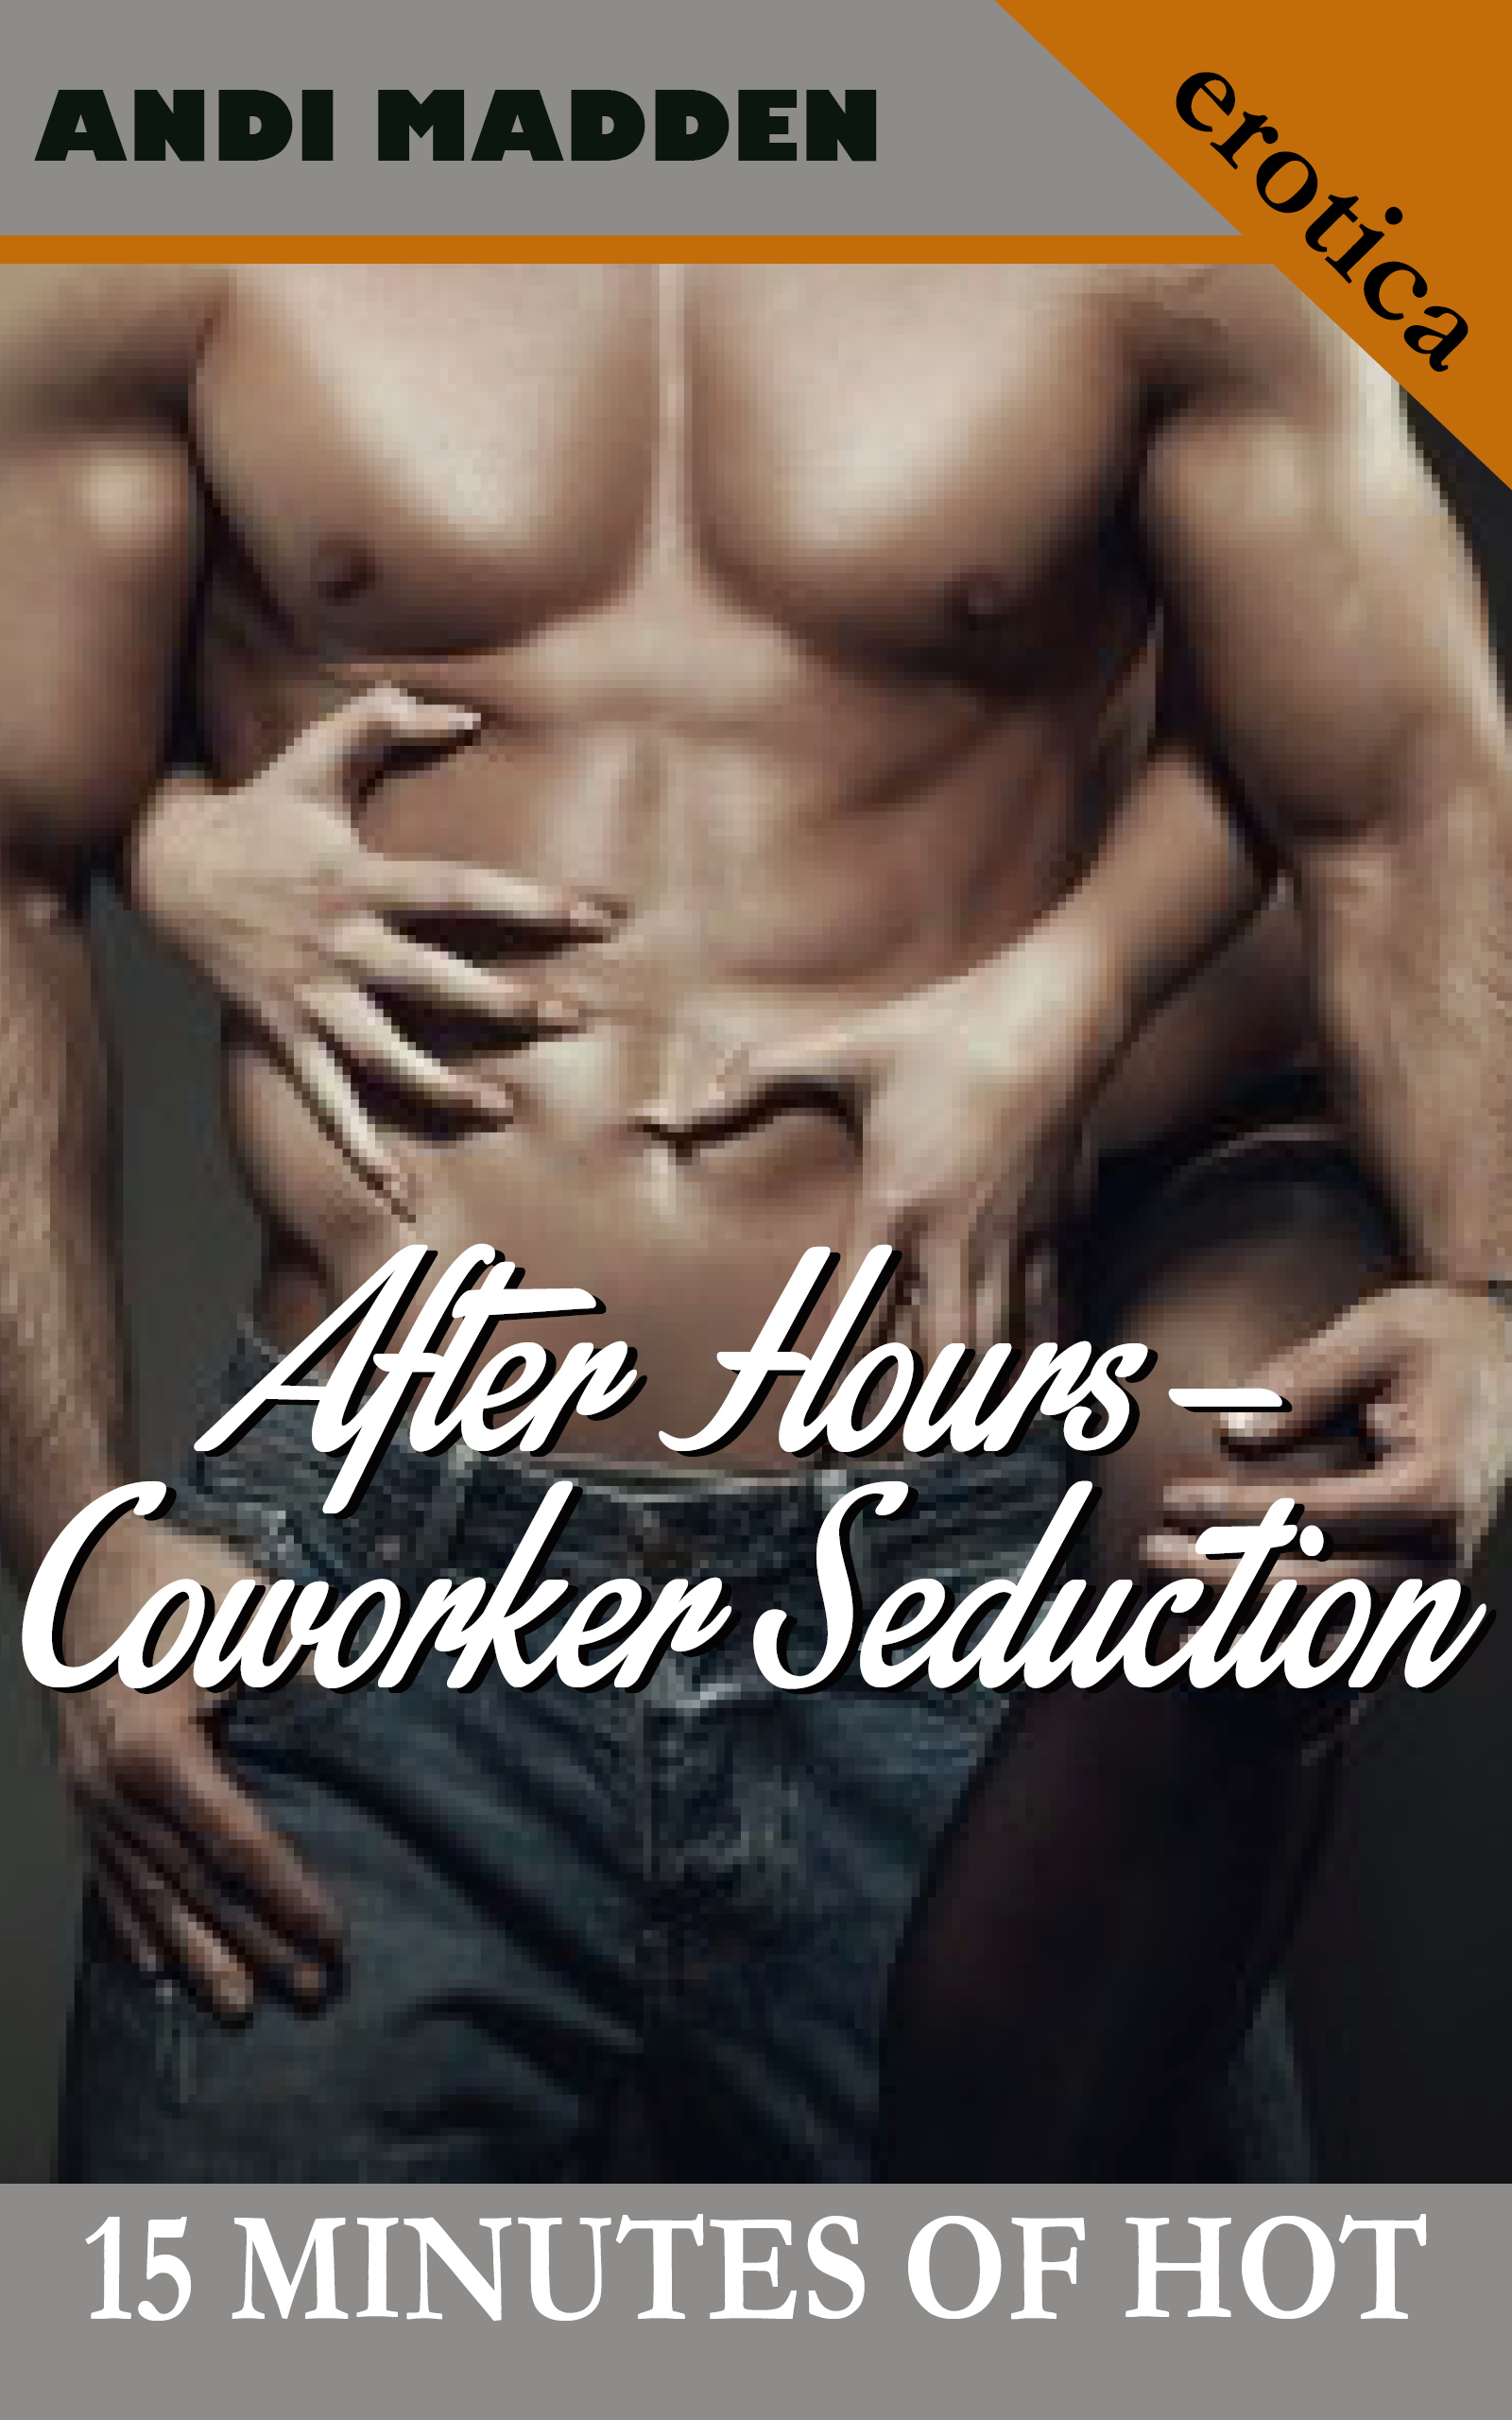 After Hours: Coworker Seduction Andi Madden